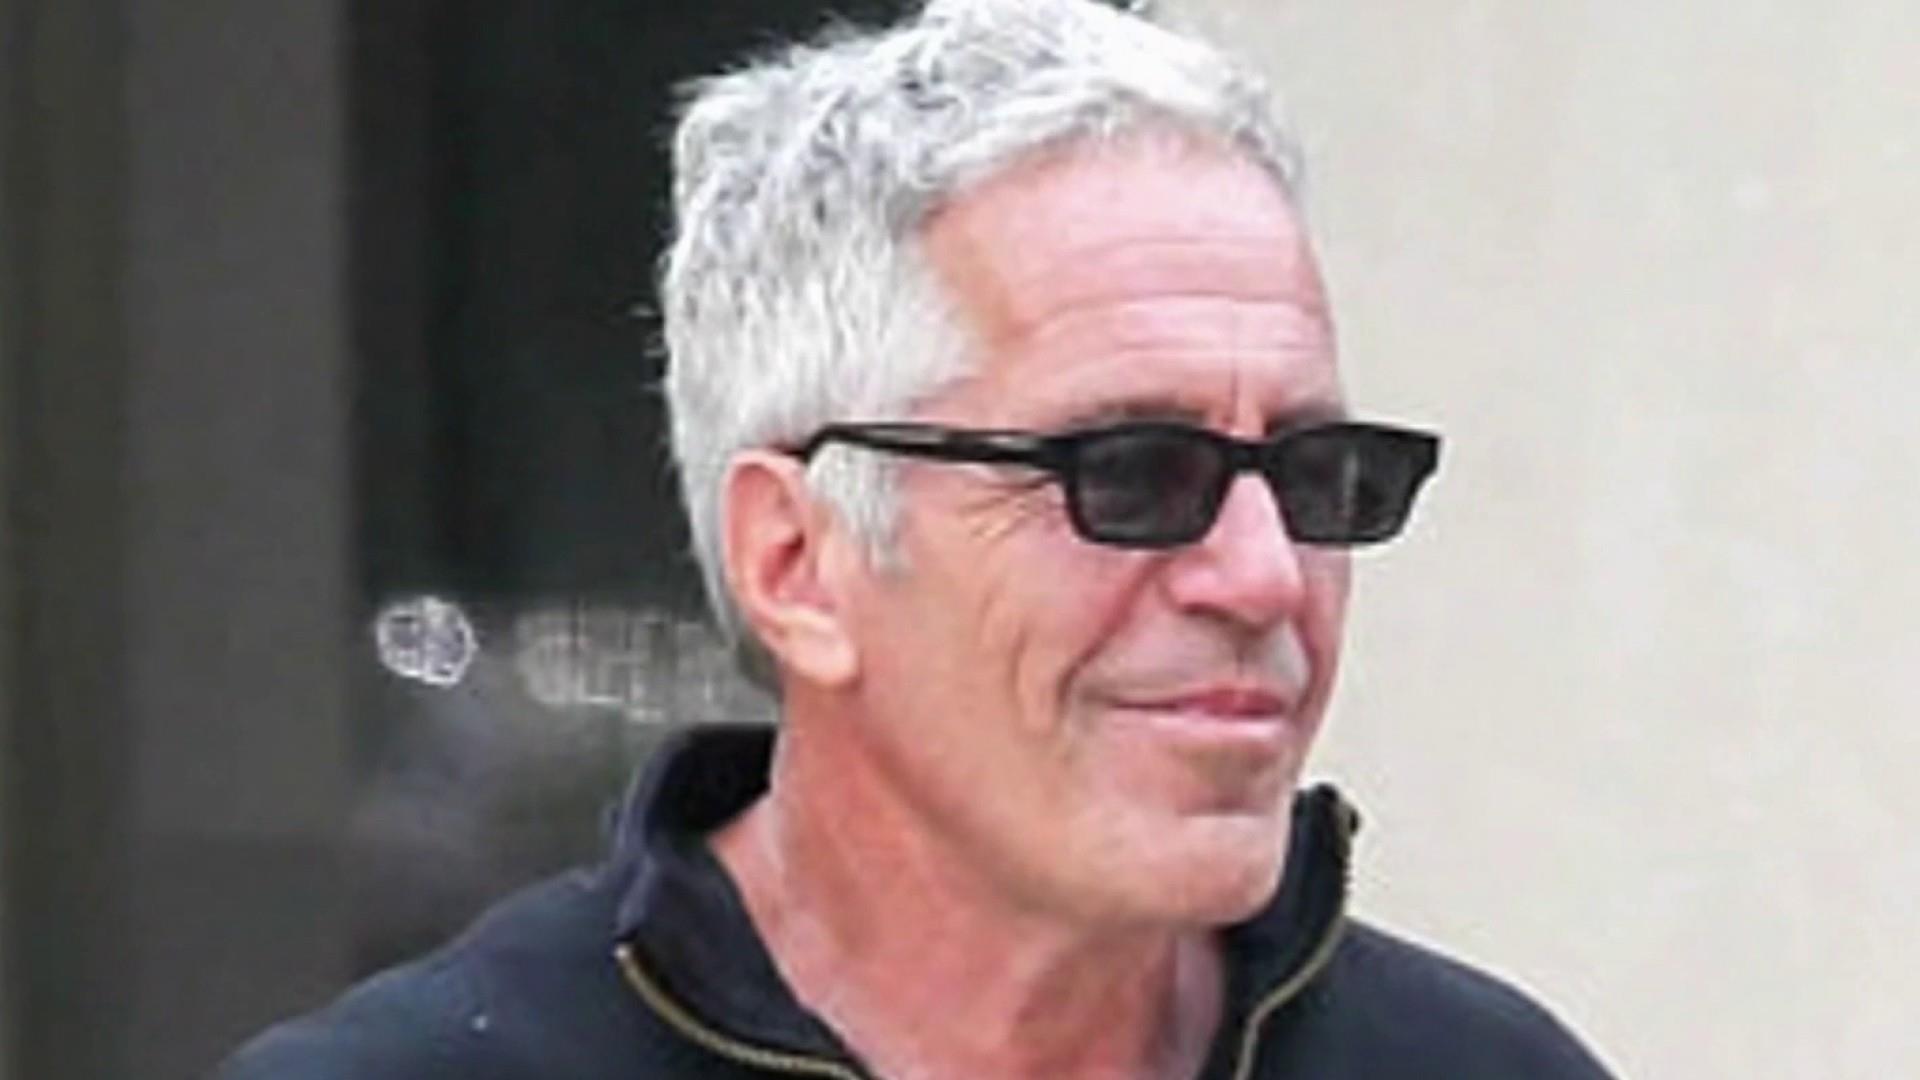 Trump adds fuel to the fire by retweeting conspiracy theory about Jeffrey Epstein's death